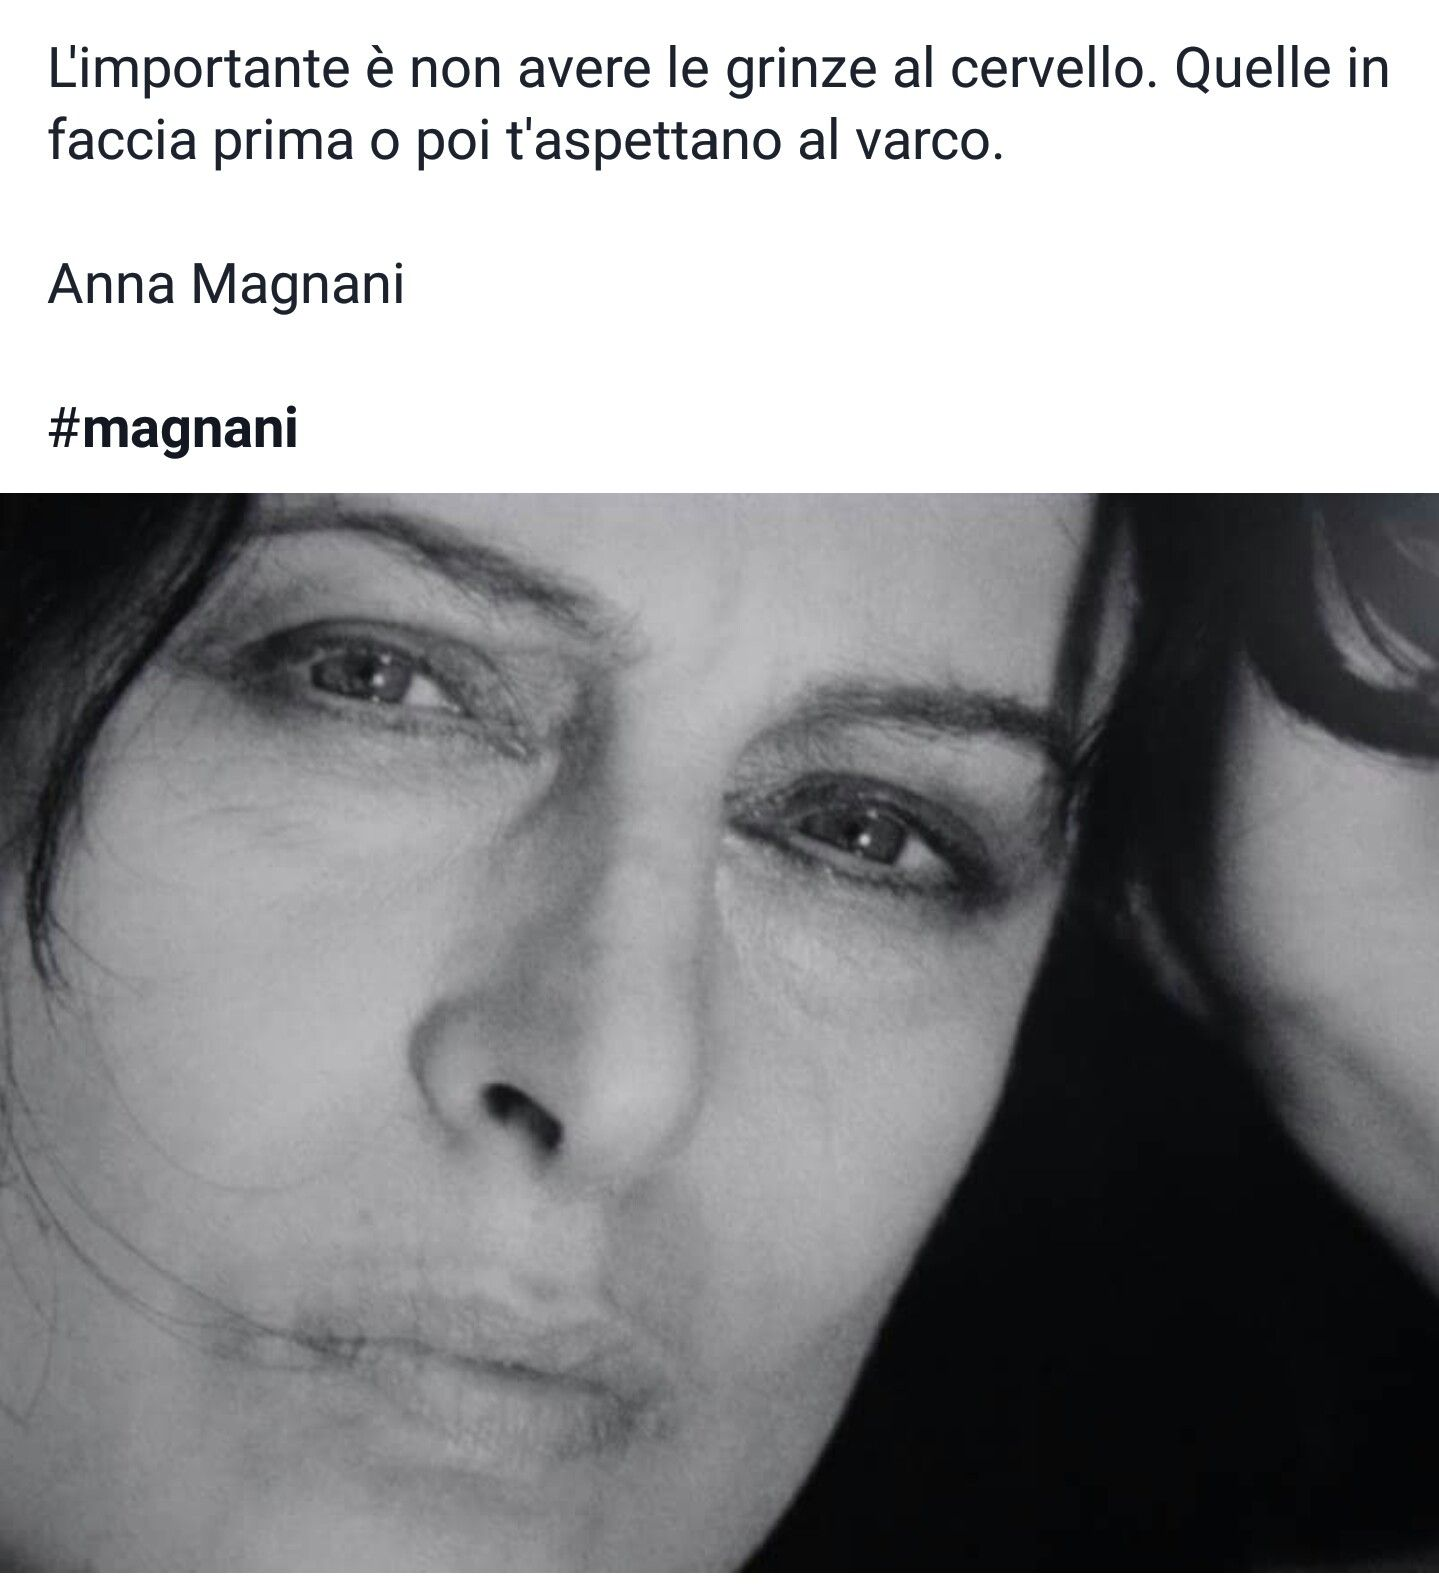 Bien connu Anna Magnani | frasi celebri | Pinterest | Anna and Thoughts VD34